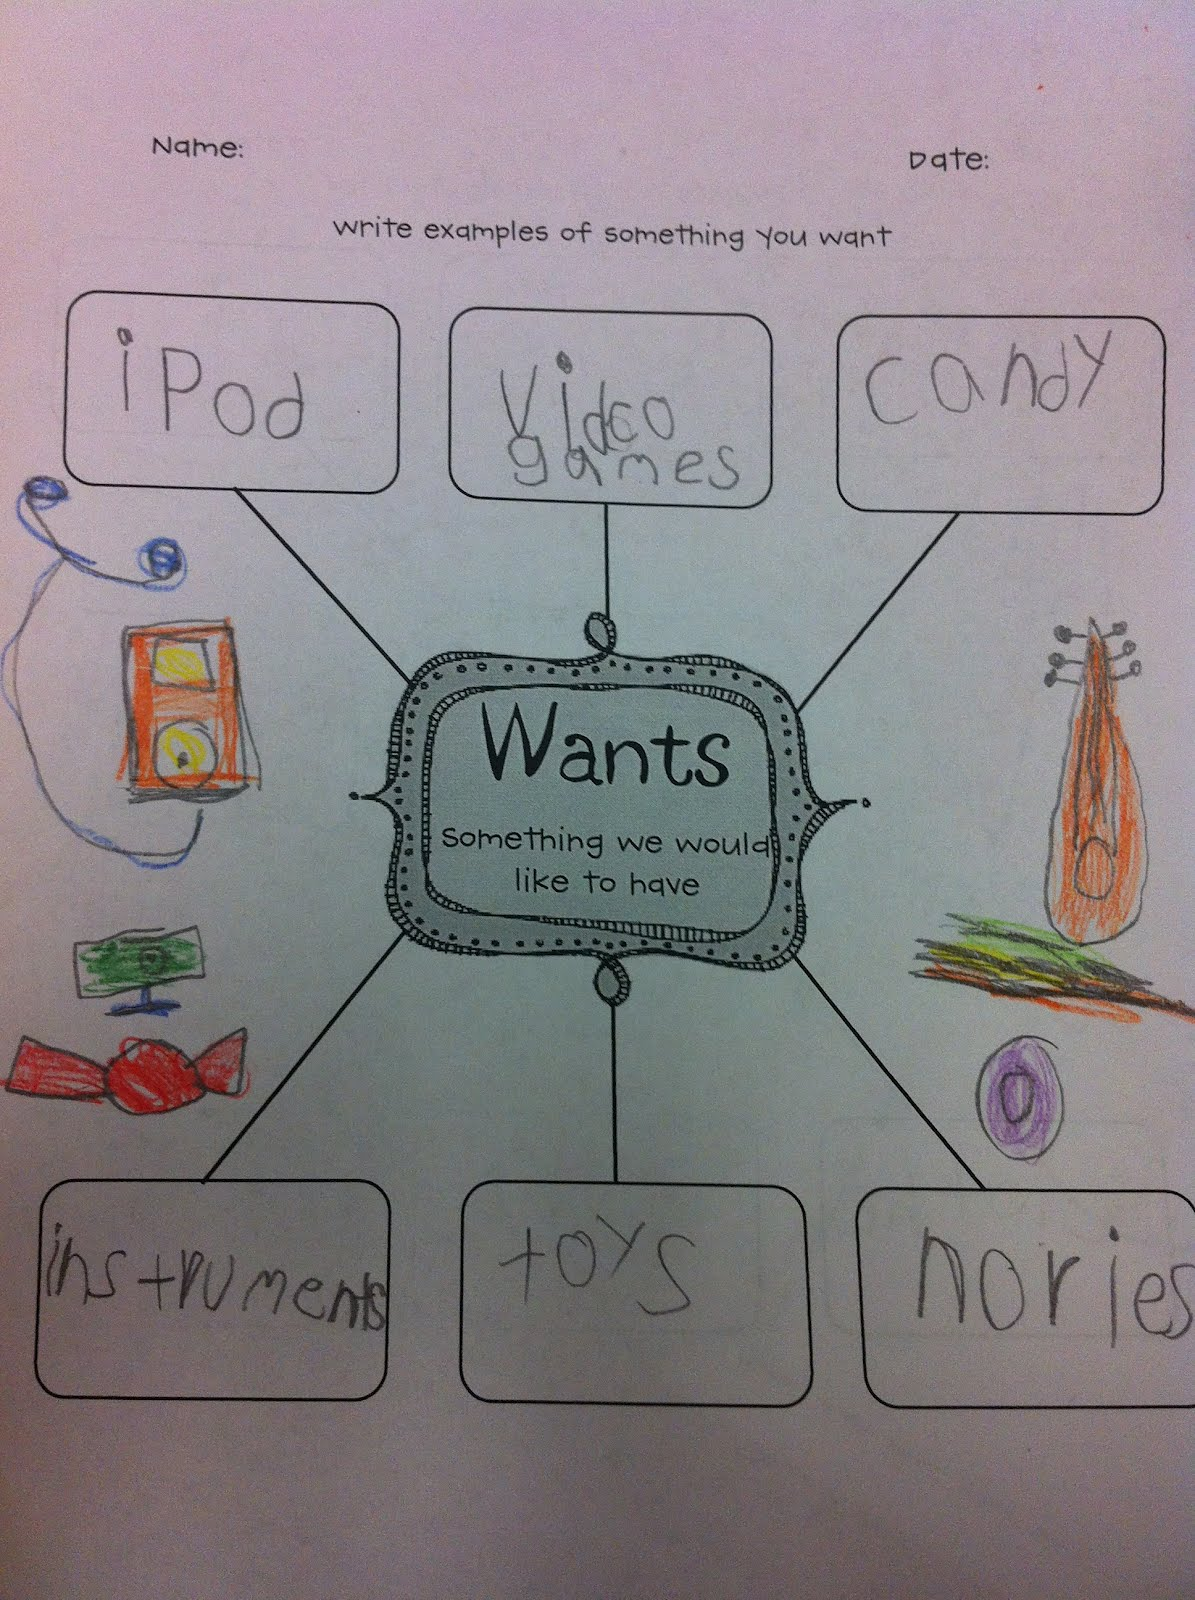 The Adventures Of A K 1 Teacher Needs Wants Goods And Services